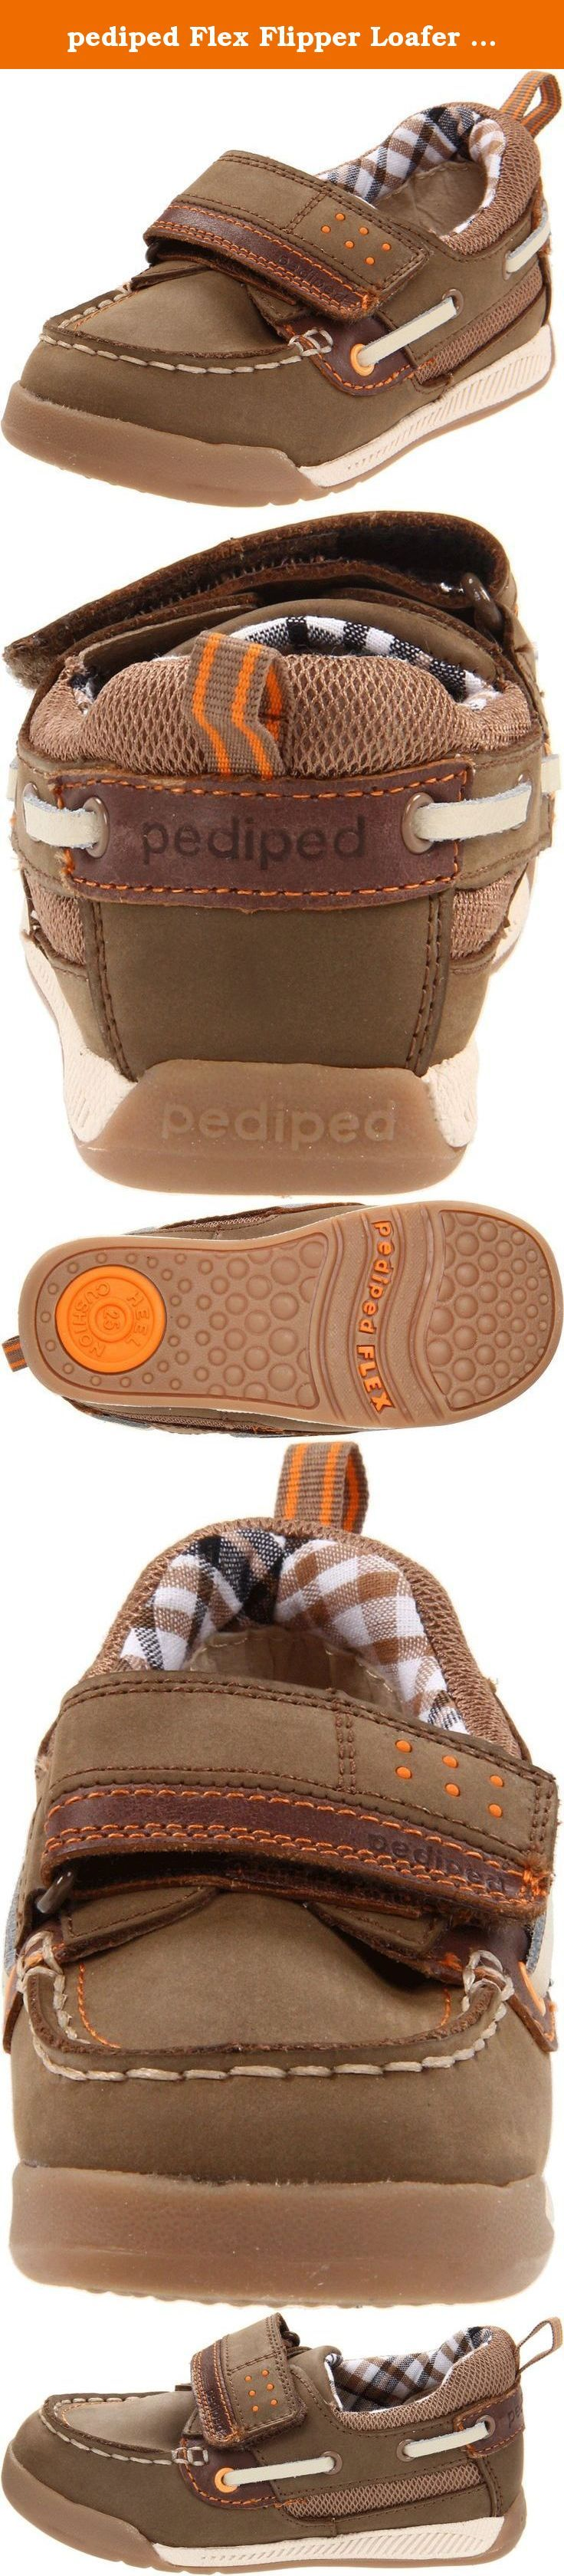 pediped Flex Flipper Loafer (Toddler/Little Kid),Brown,22 EU (6-6.5 M US Toddler). Pediped Flex Kat - Black Fashion boot for your little fashionista. All leather uppers insure comfort, breathability and style. Flexible soles insure comfort and natural foot motion. Zipper enclosures for ease of wear. Flex fit system for additional wear time. Made in China .